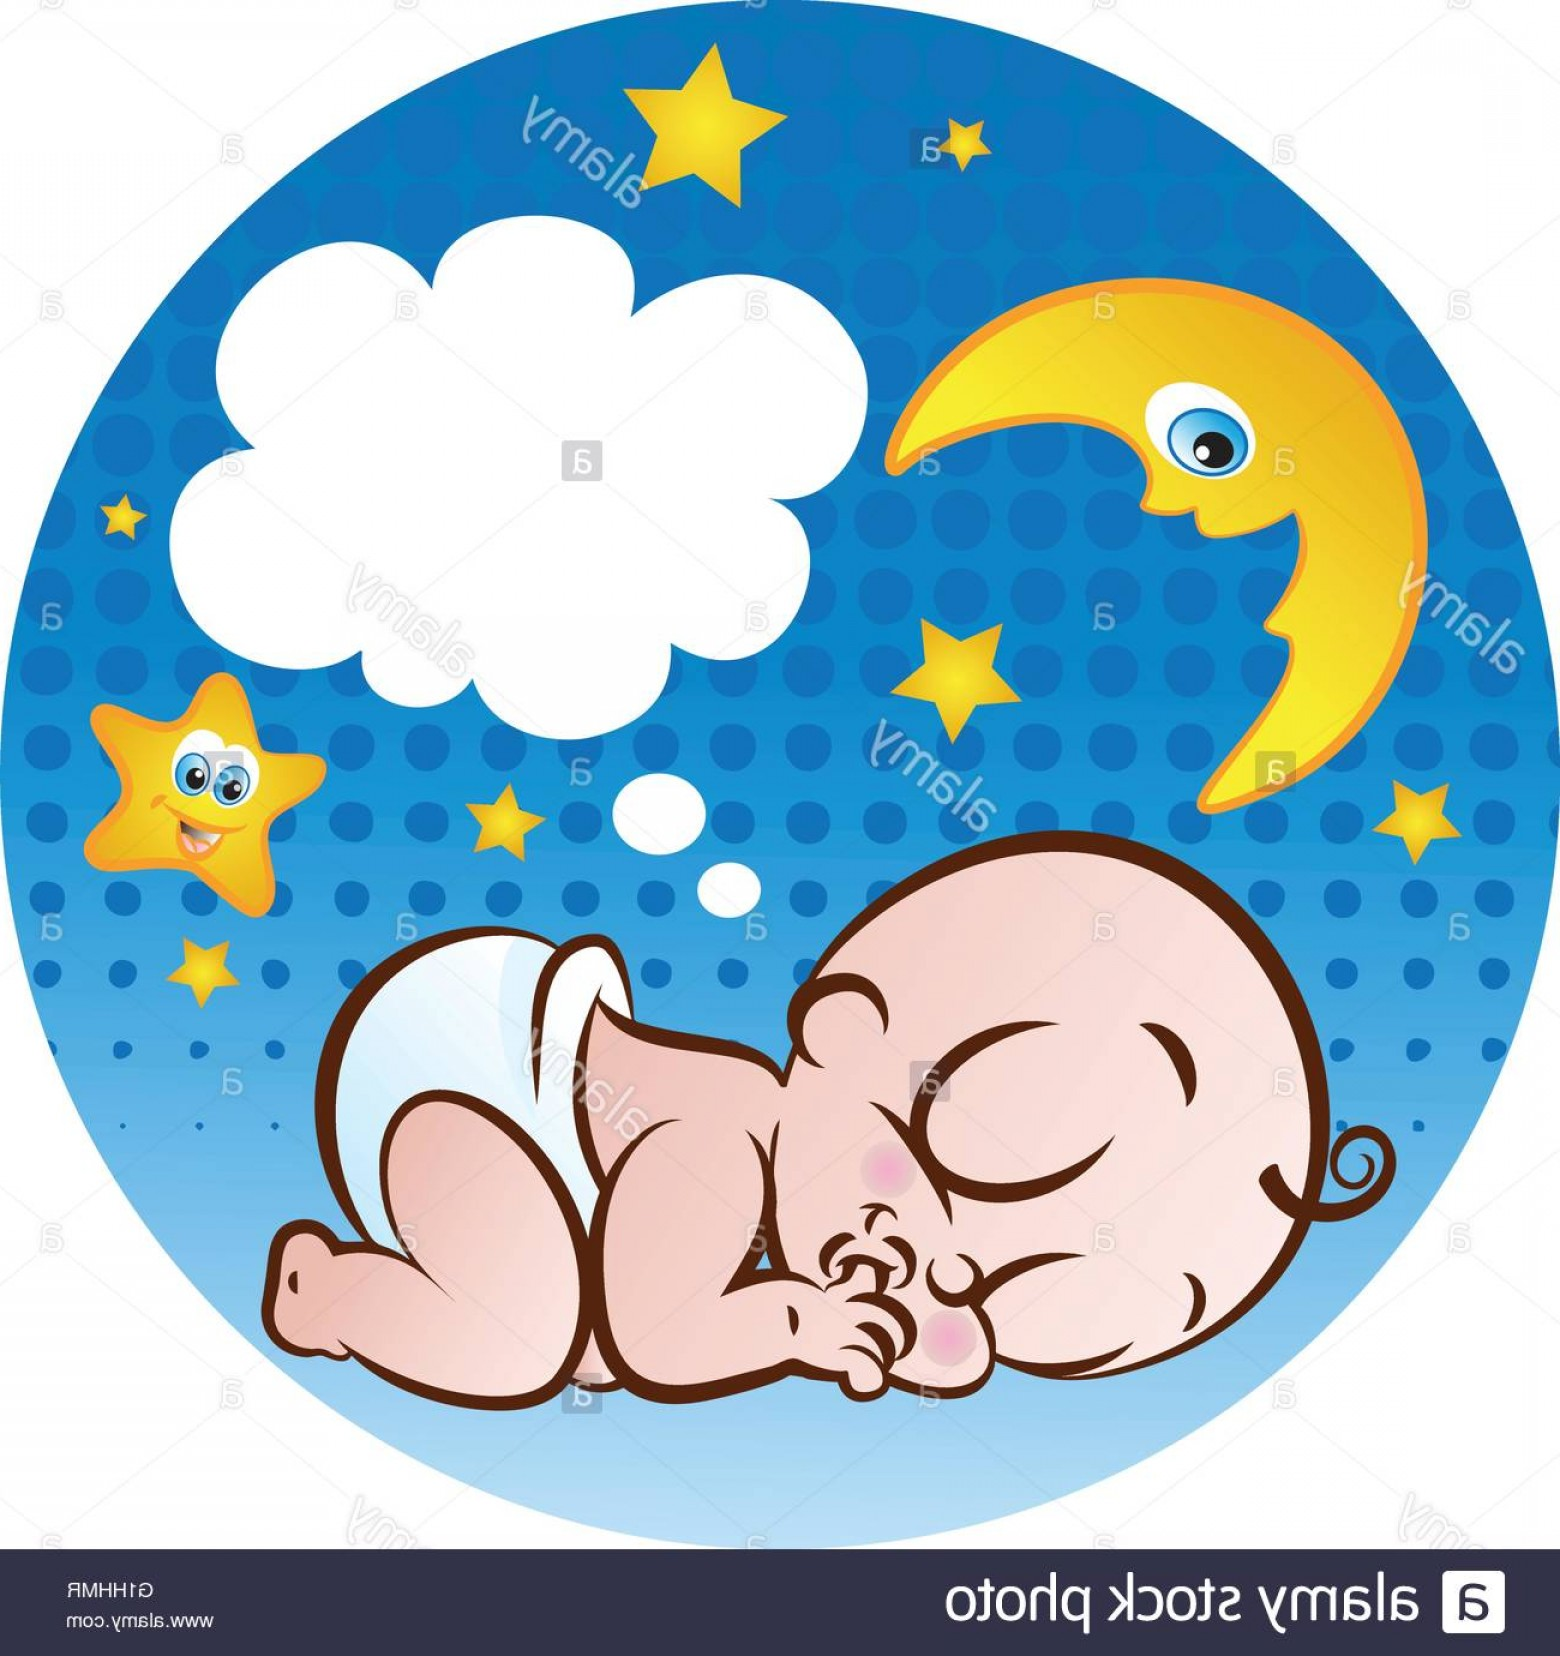 Sleeping Baby Vector: Stock Photo Vector Illustration Of A Cute Sleeping Baby Boy Sucking His Thumb